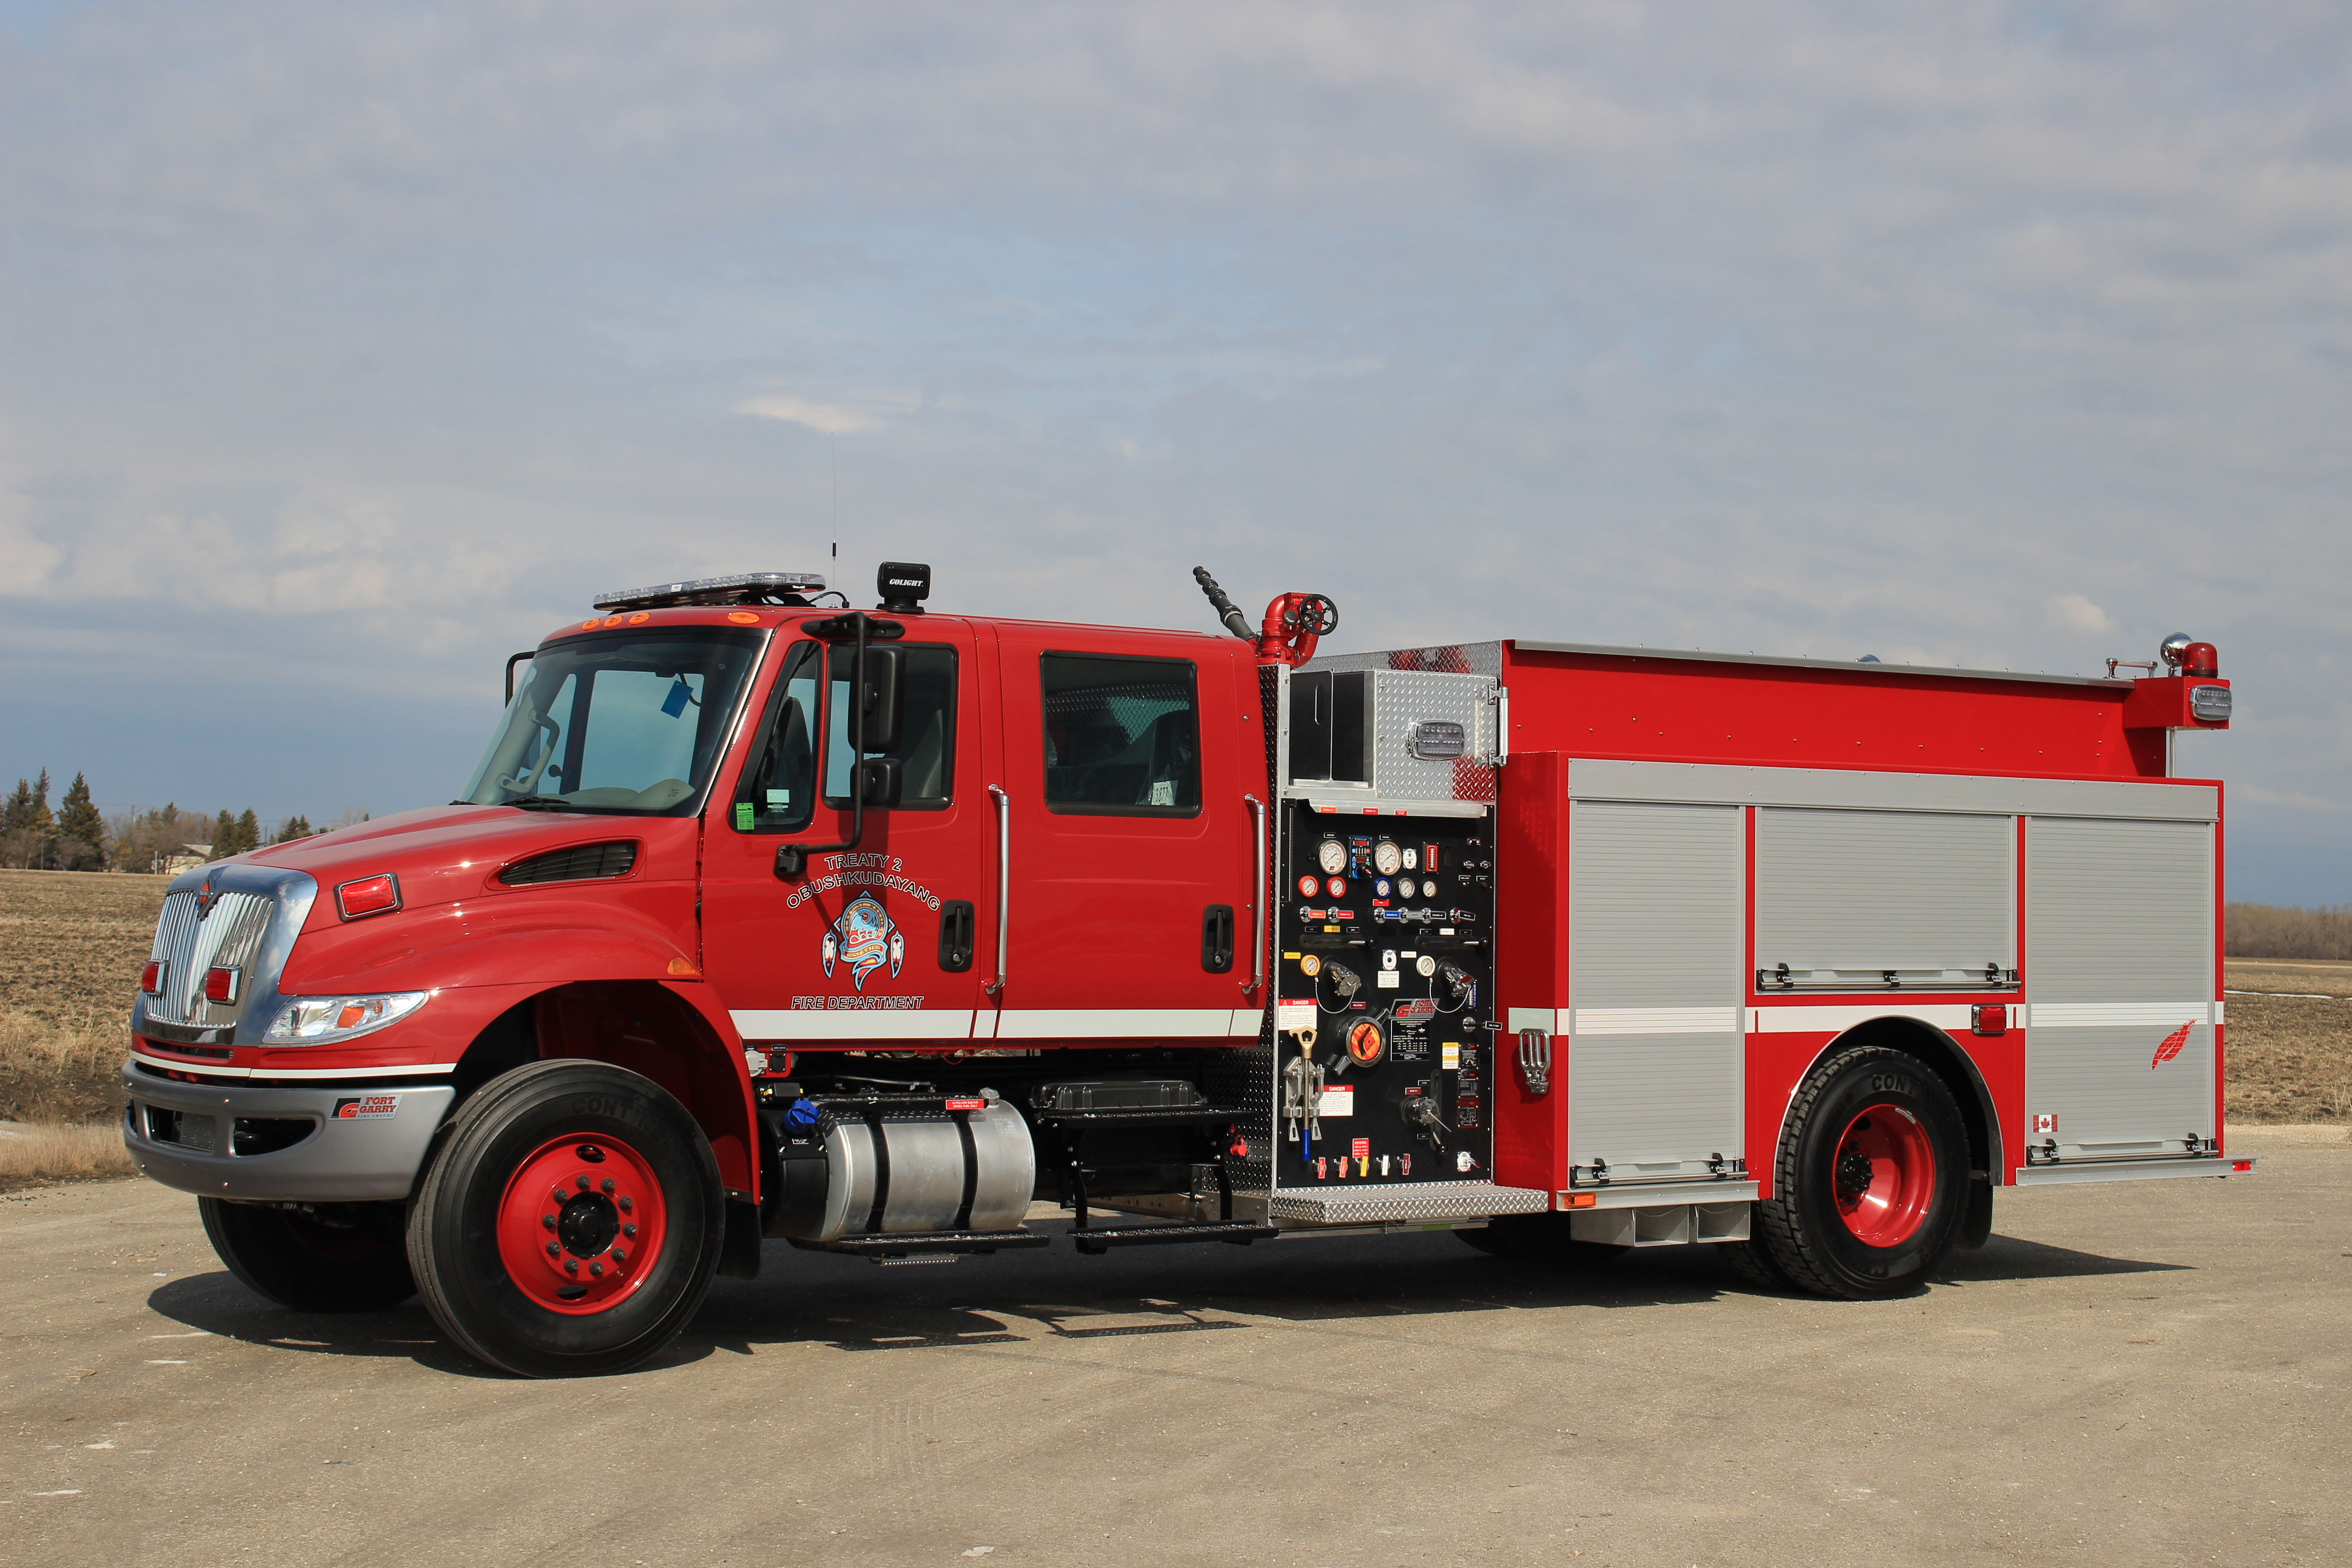 Freightliner Trucks For Sale >> Lake St Martin First Nation Vol Fire Department | Fort ...